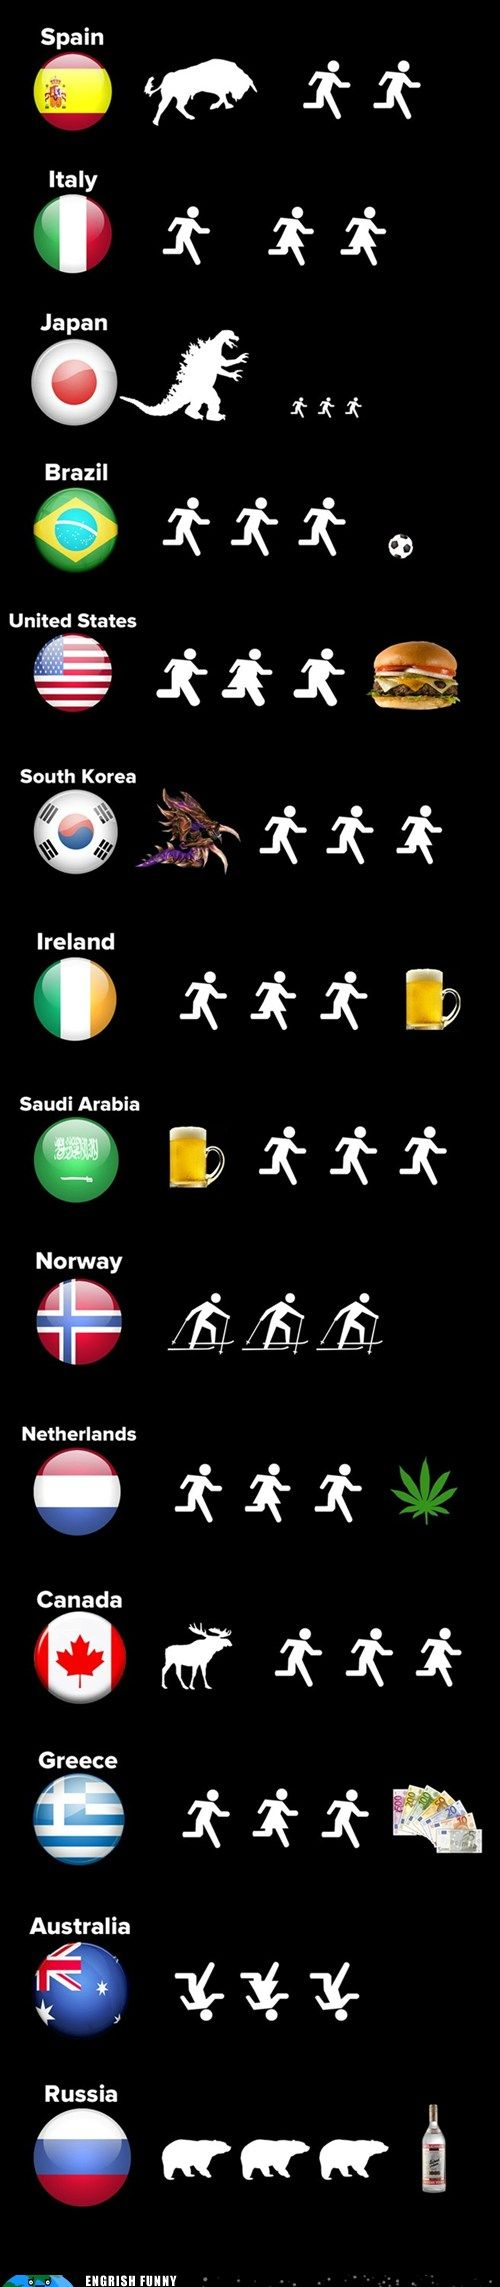 Hilarious. Running around the world.